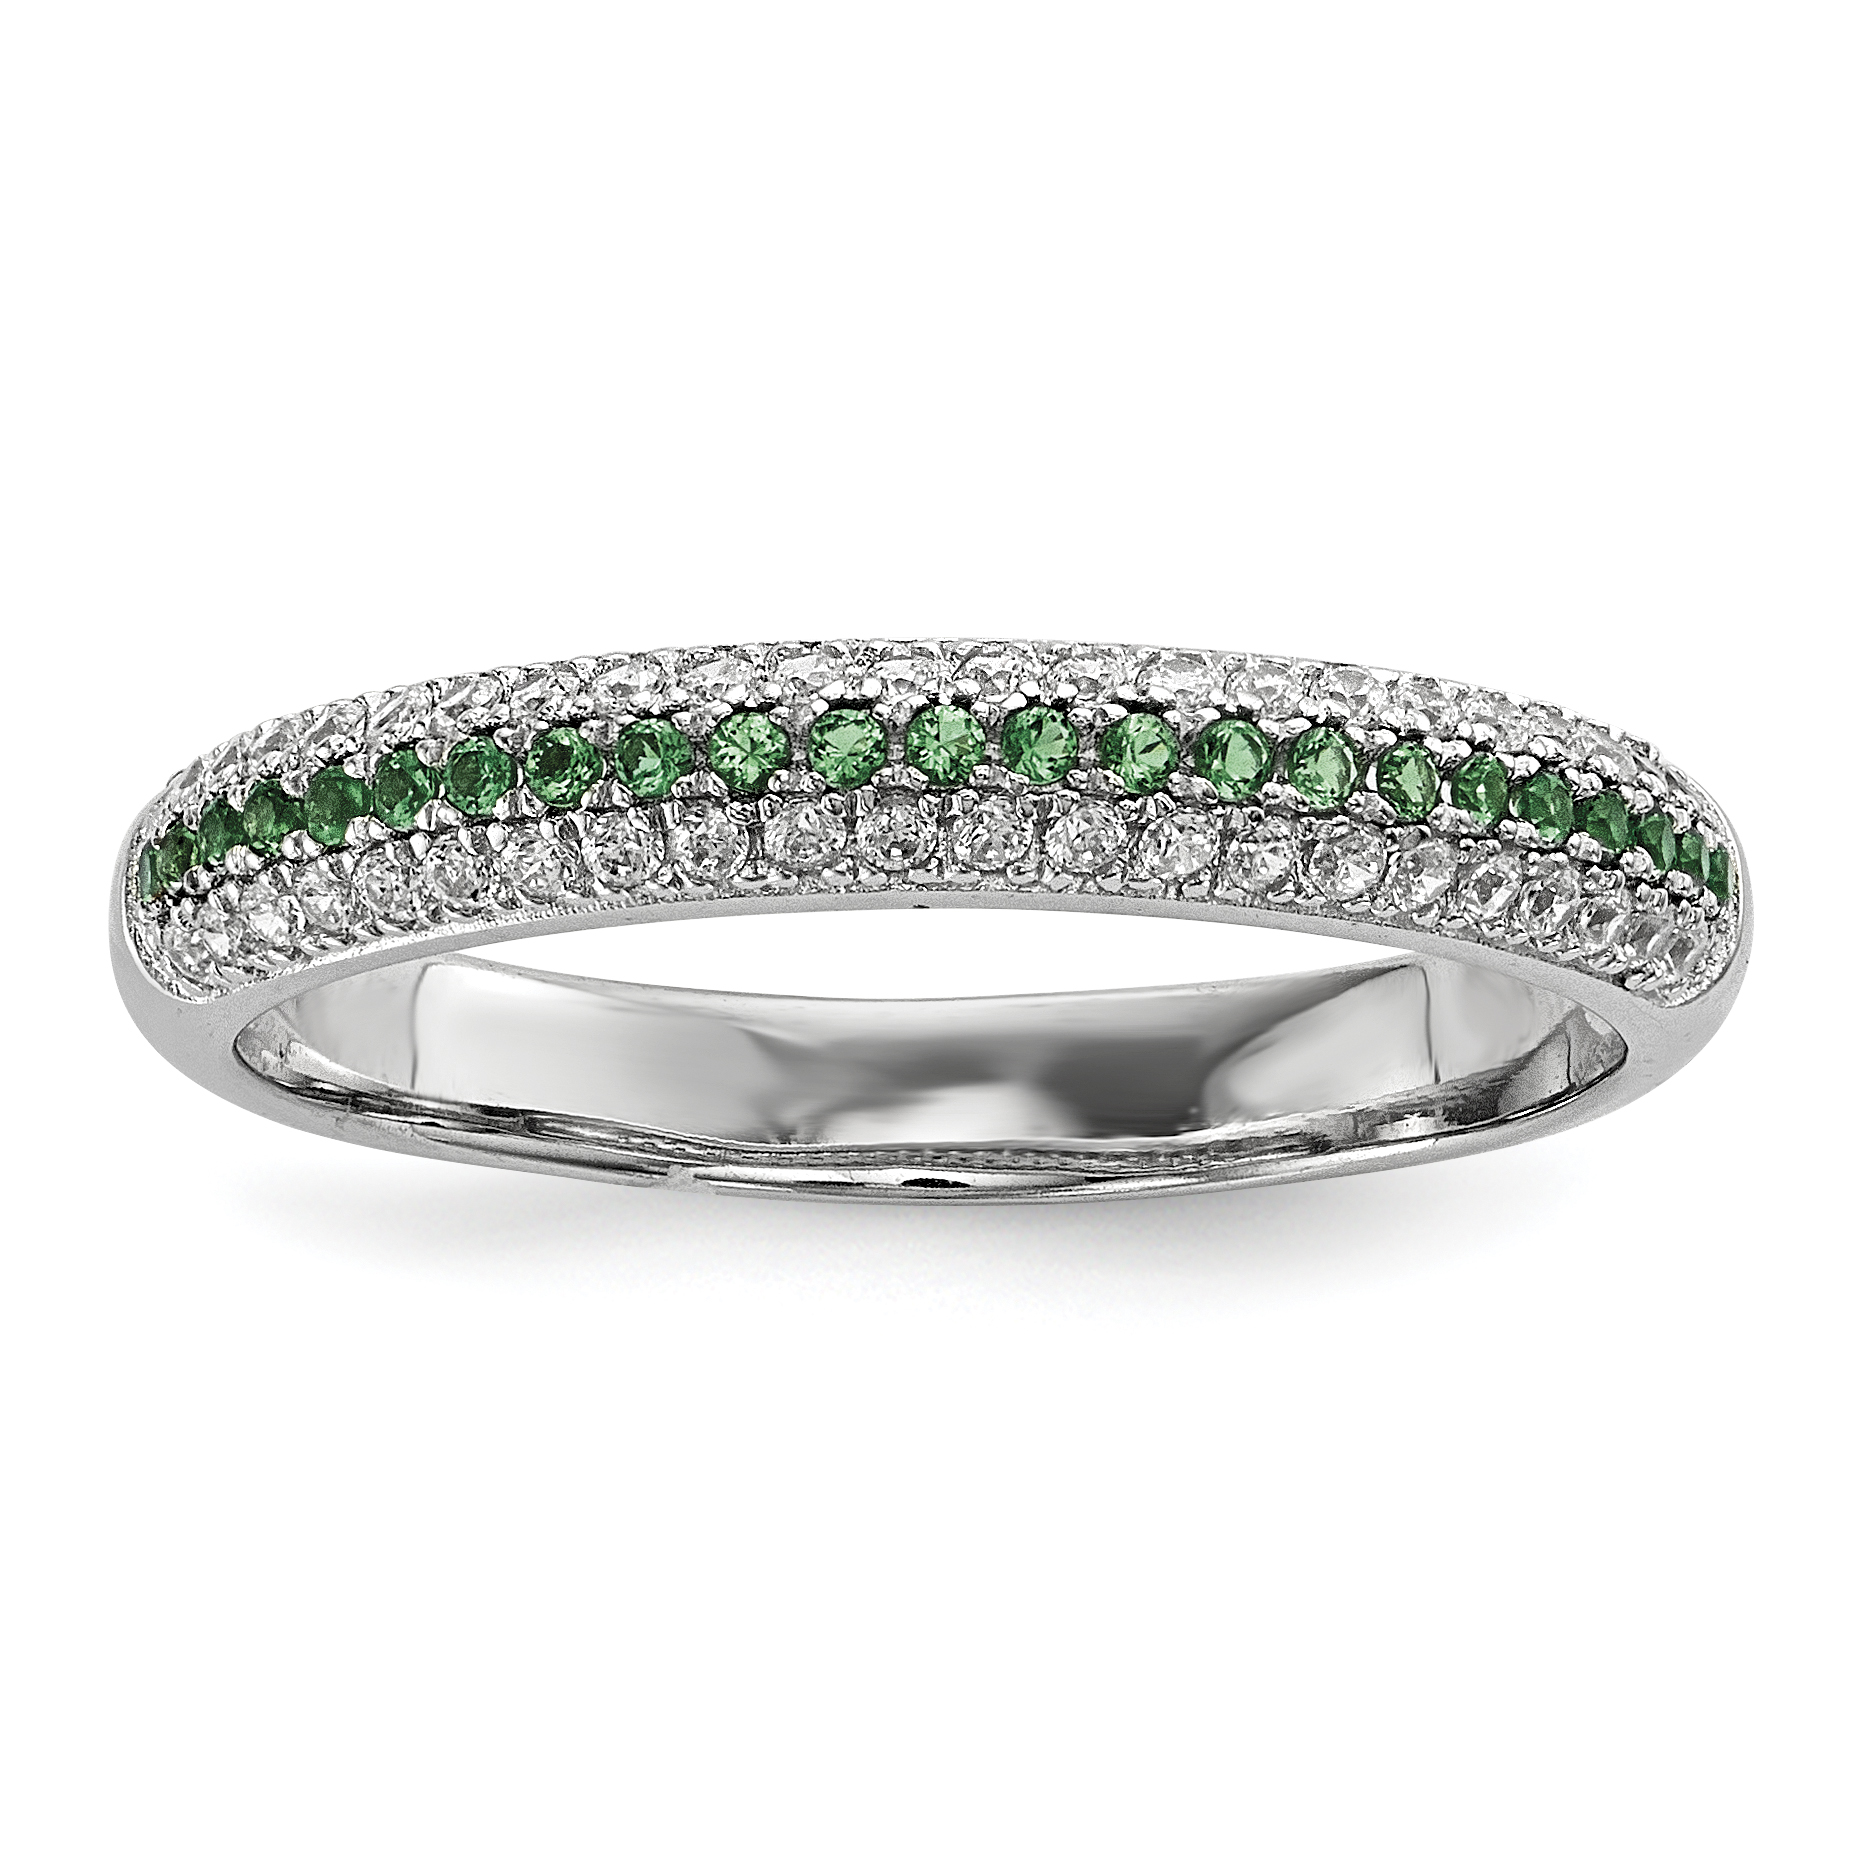 925 Sterling Silver Green White Cubic Zirconia Cz Band Ring Size 6.00 Wedding Fancy Fine Jewelry Gifts For Women For Her - image 5 of 5